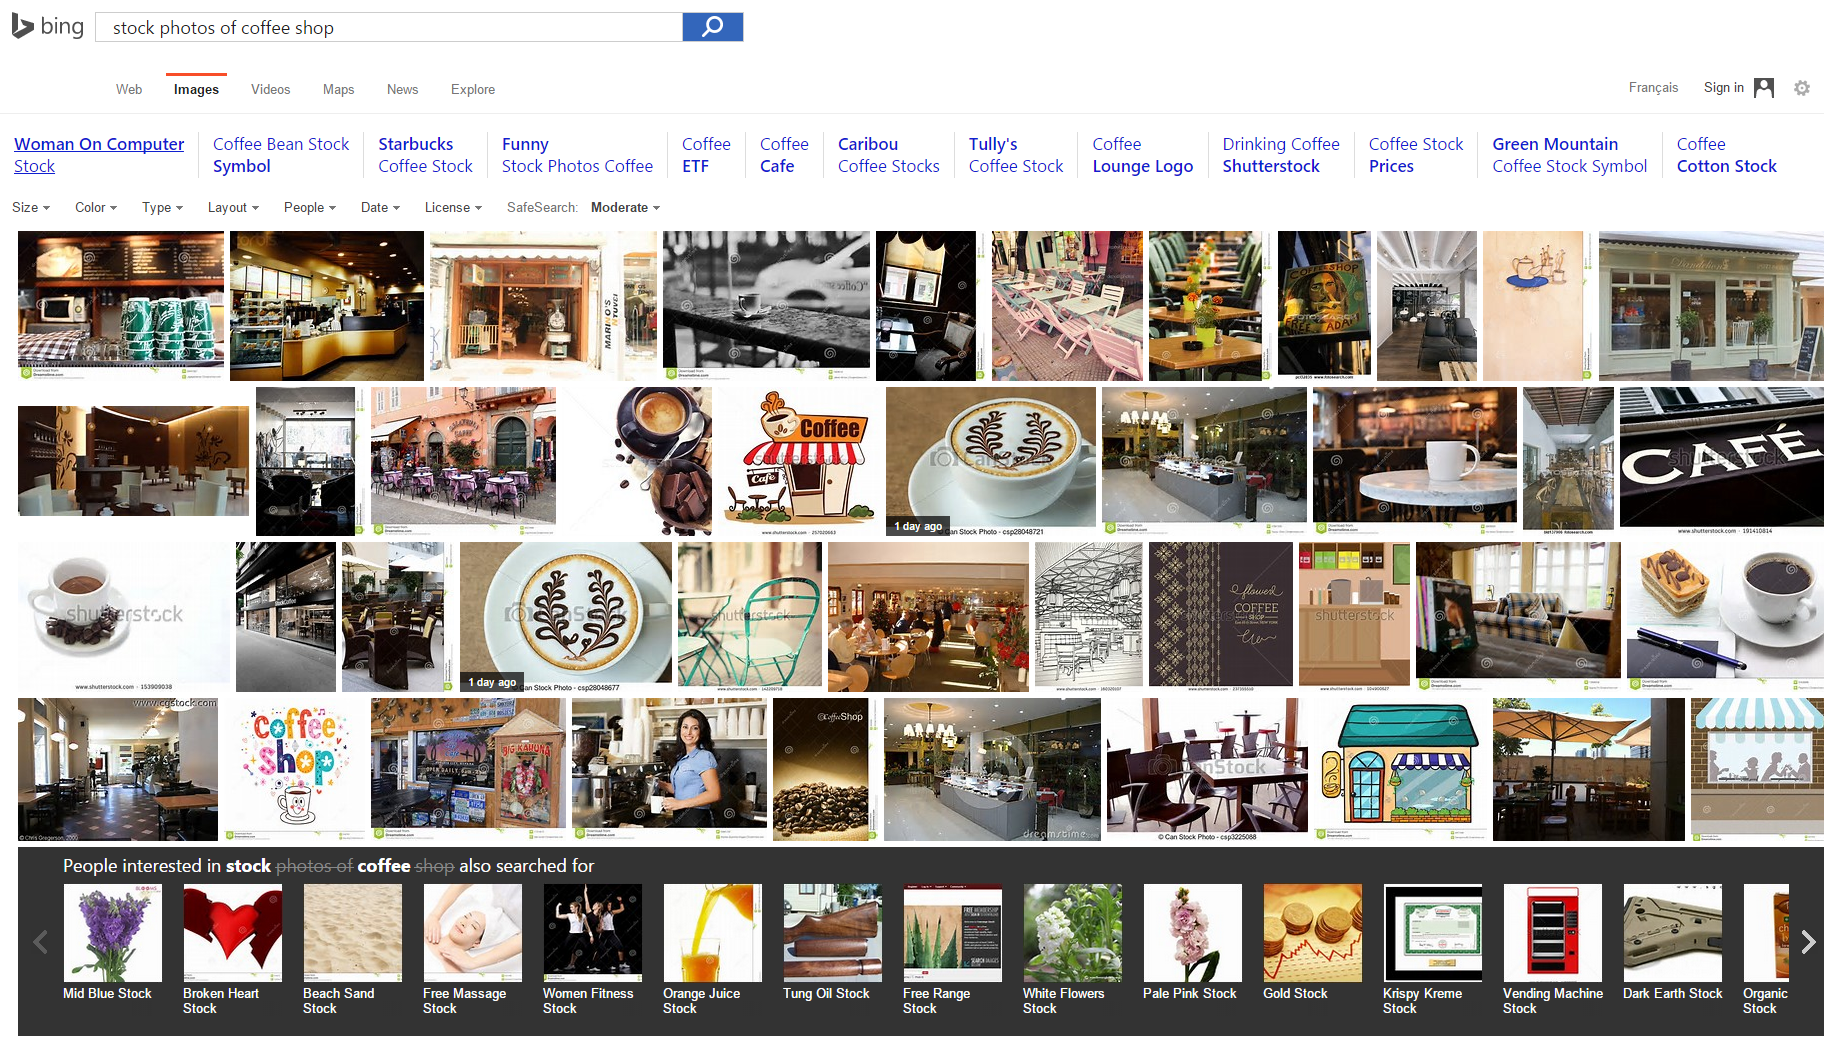 Getty Images Blames Google, Not Competitors, for Low Sales